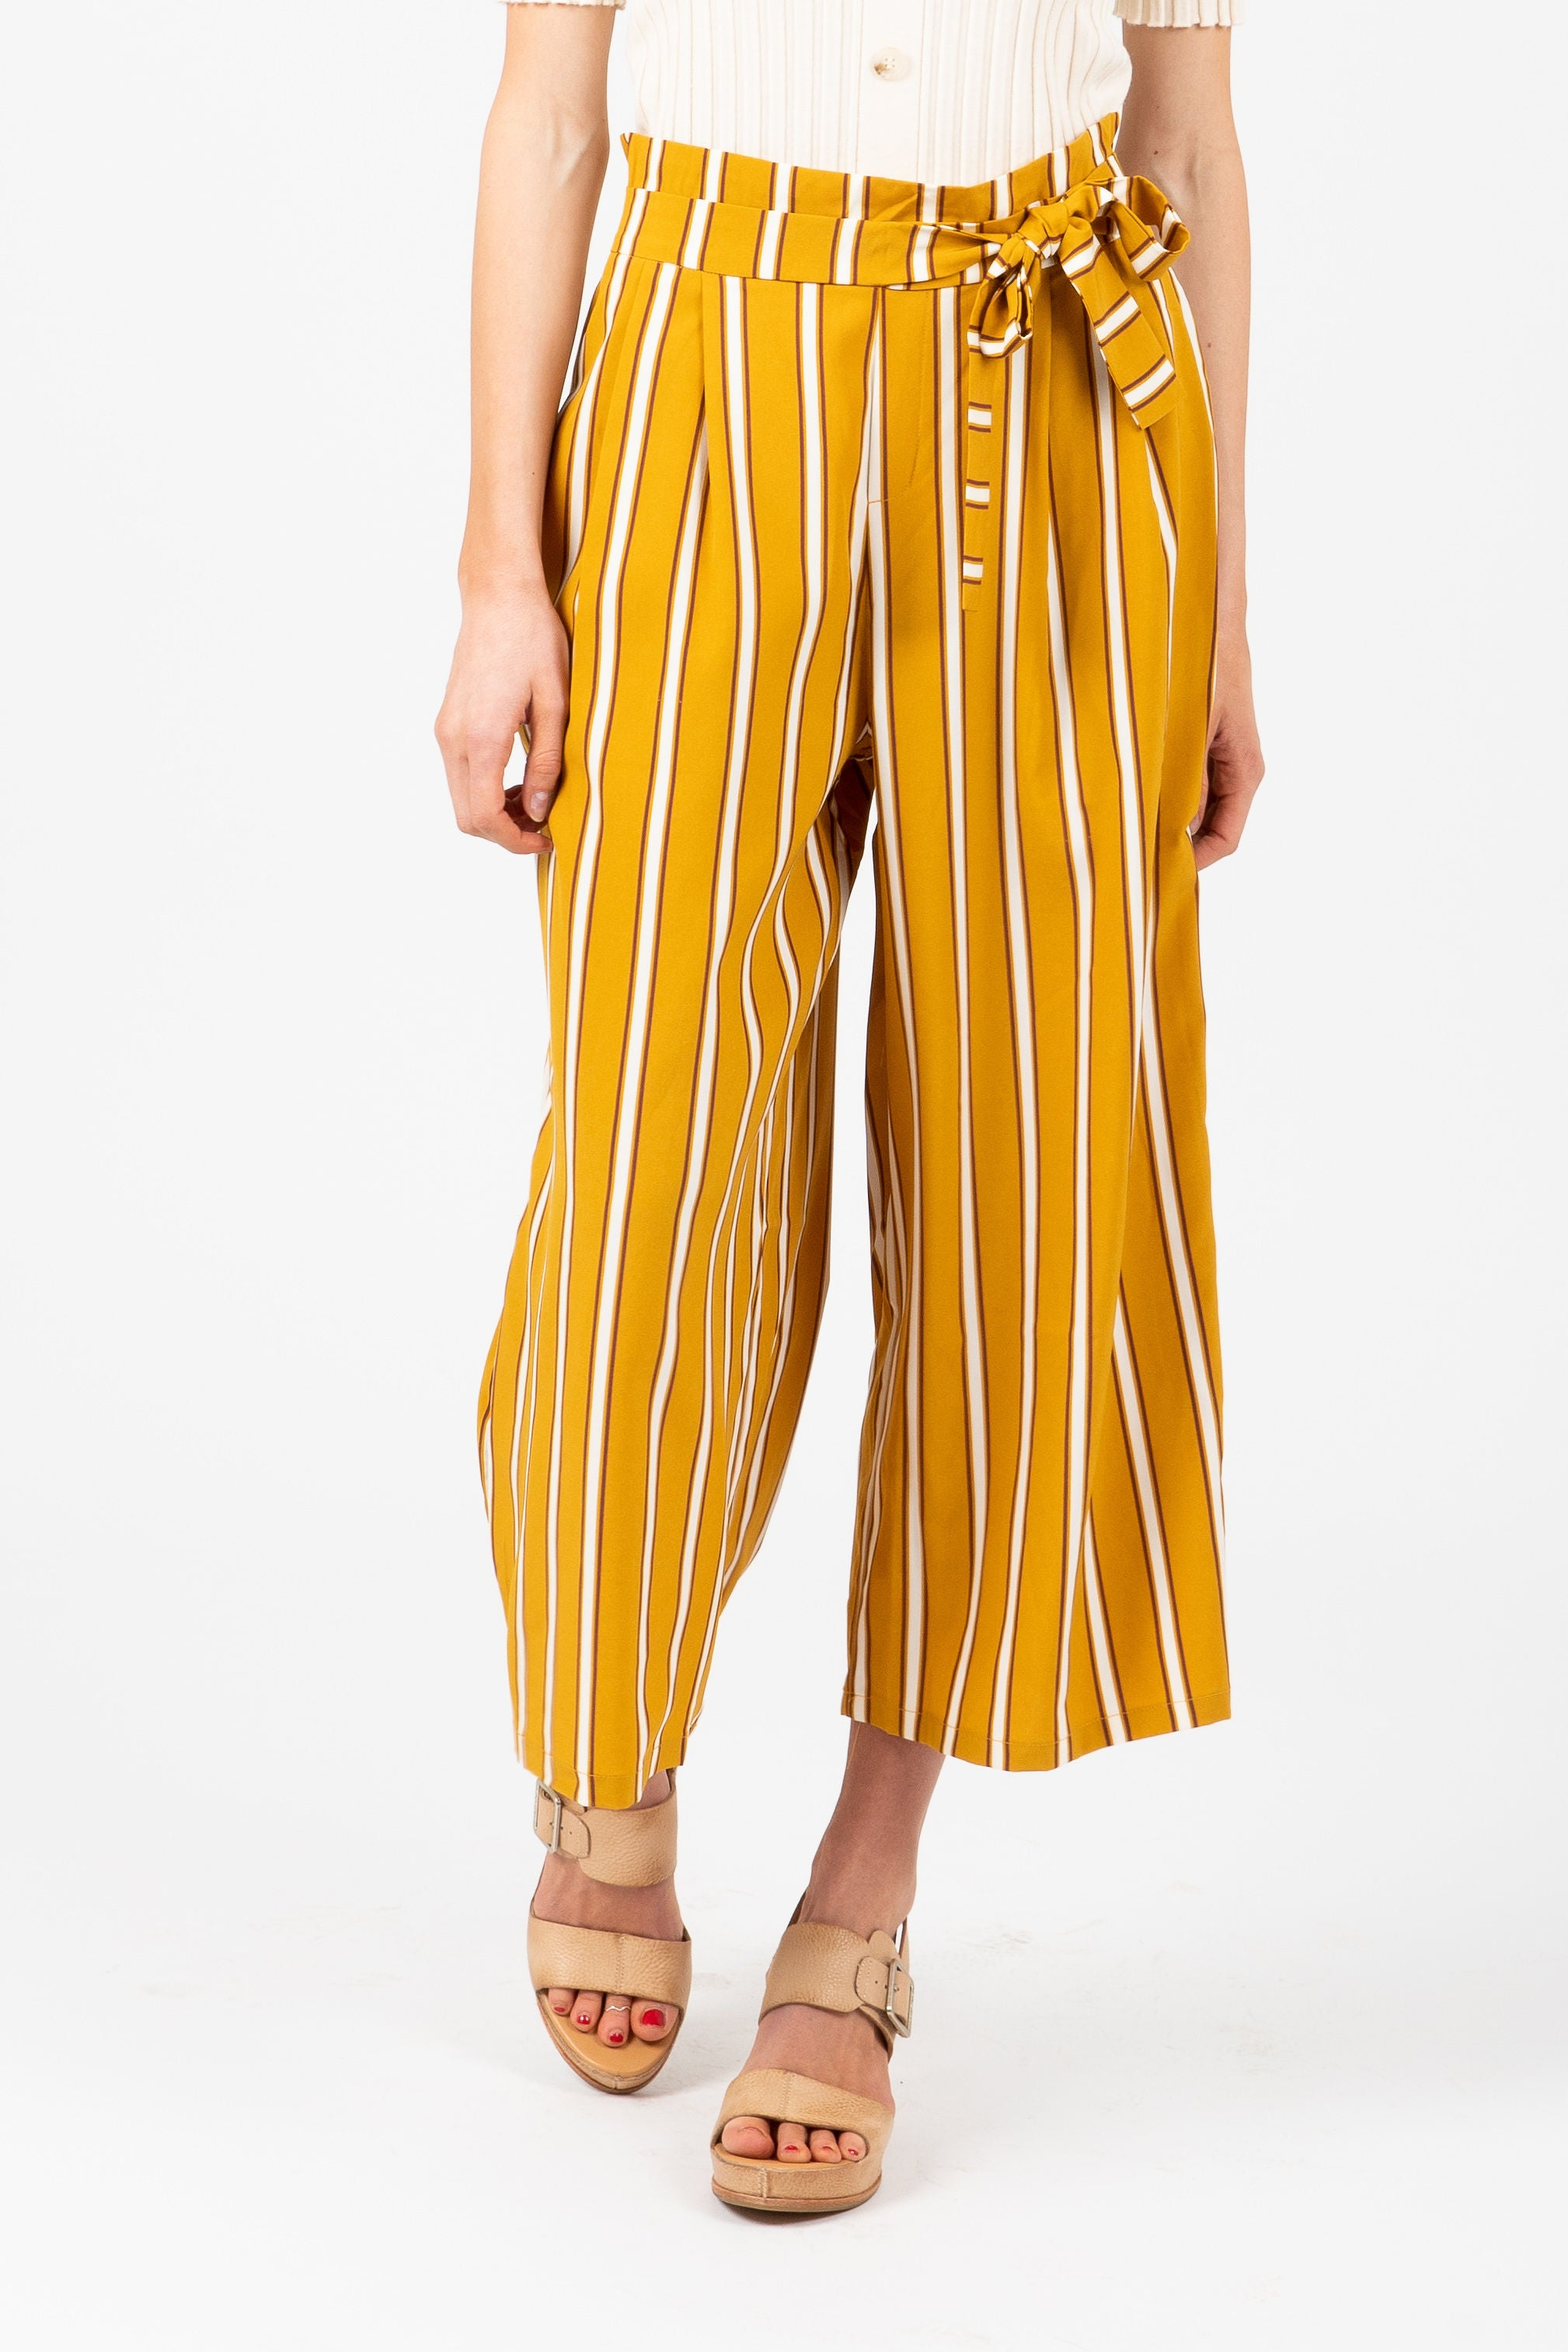 The Pretty Please Striped Wide Leg Trouser in Mustard